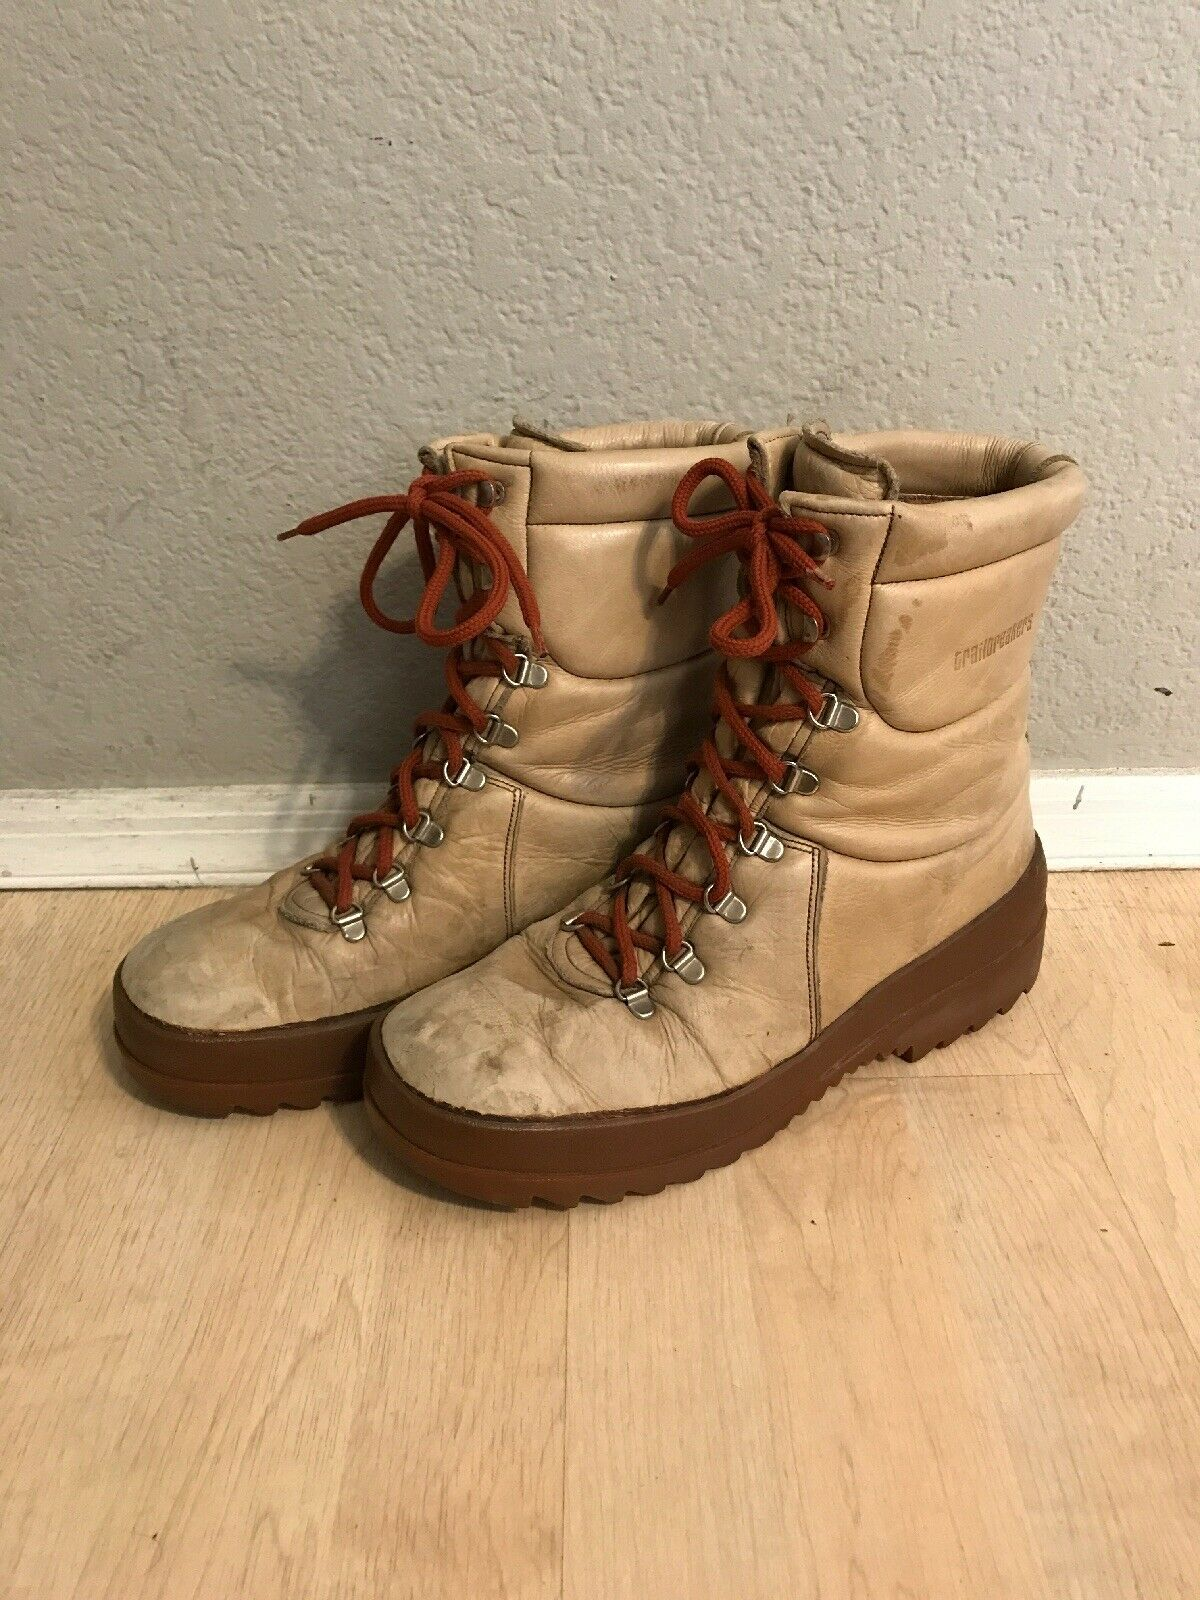 VINTAGE MENS TRAILBREAKERS SKYWALK SKYWALK SKYWALK HIKING BOOTS - SIZE 10 M, MADE IN ITALY RARE 6ba141